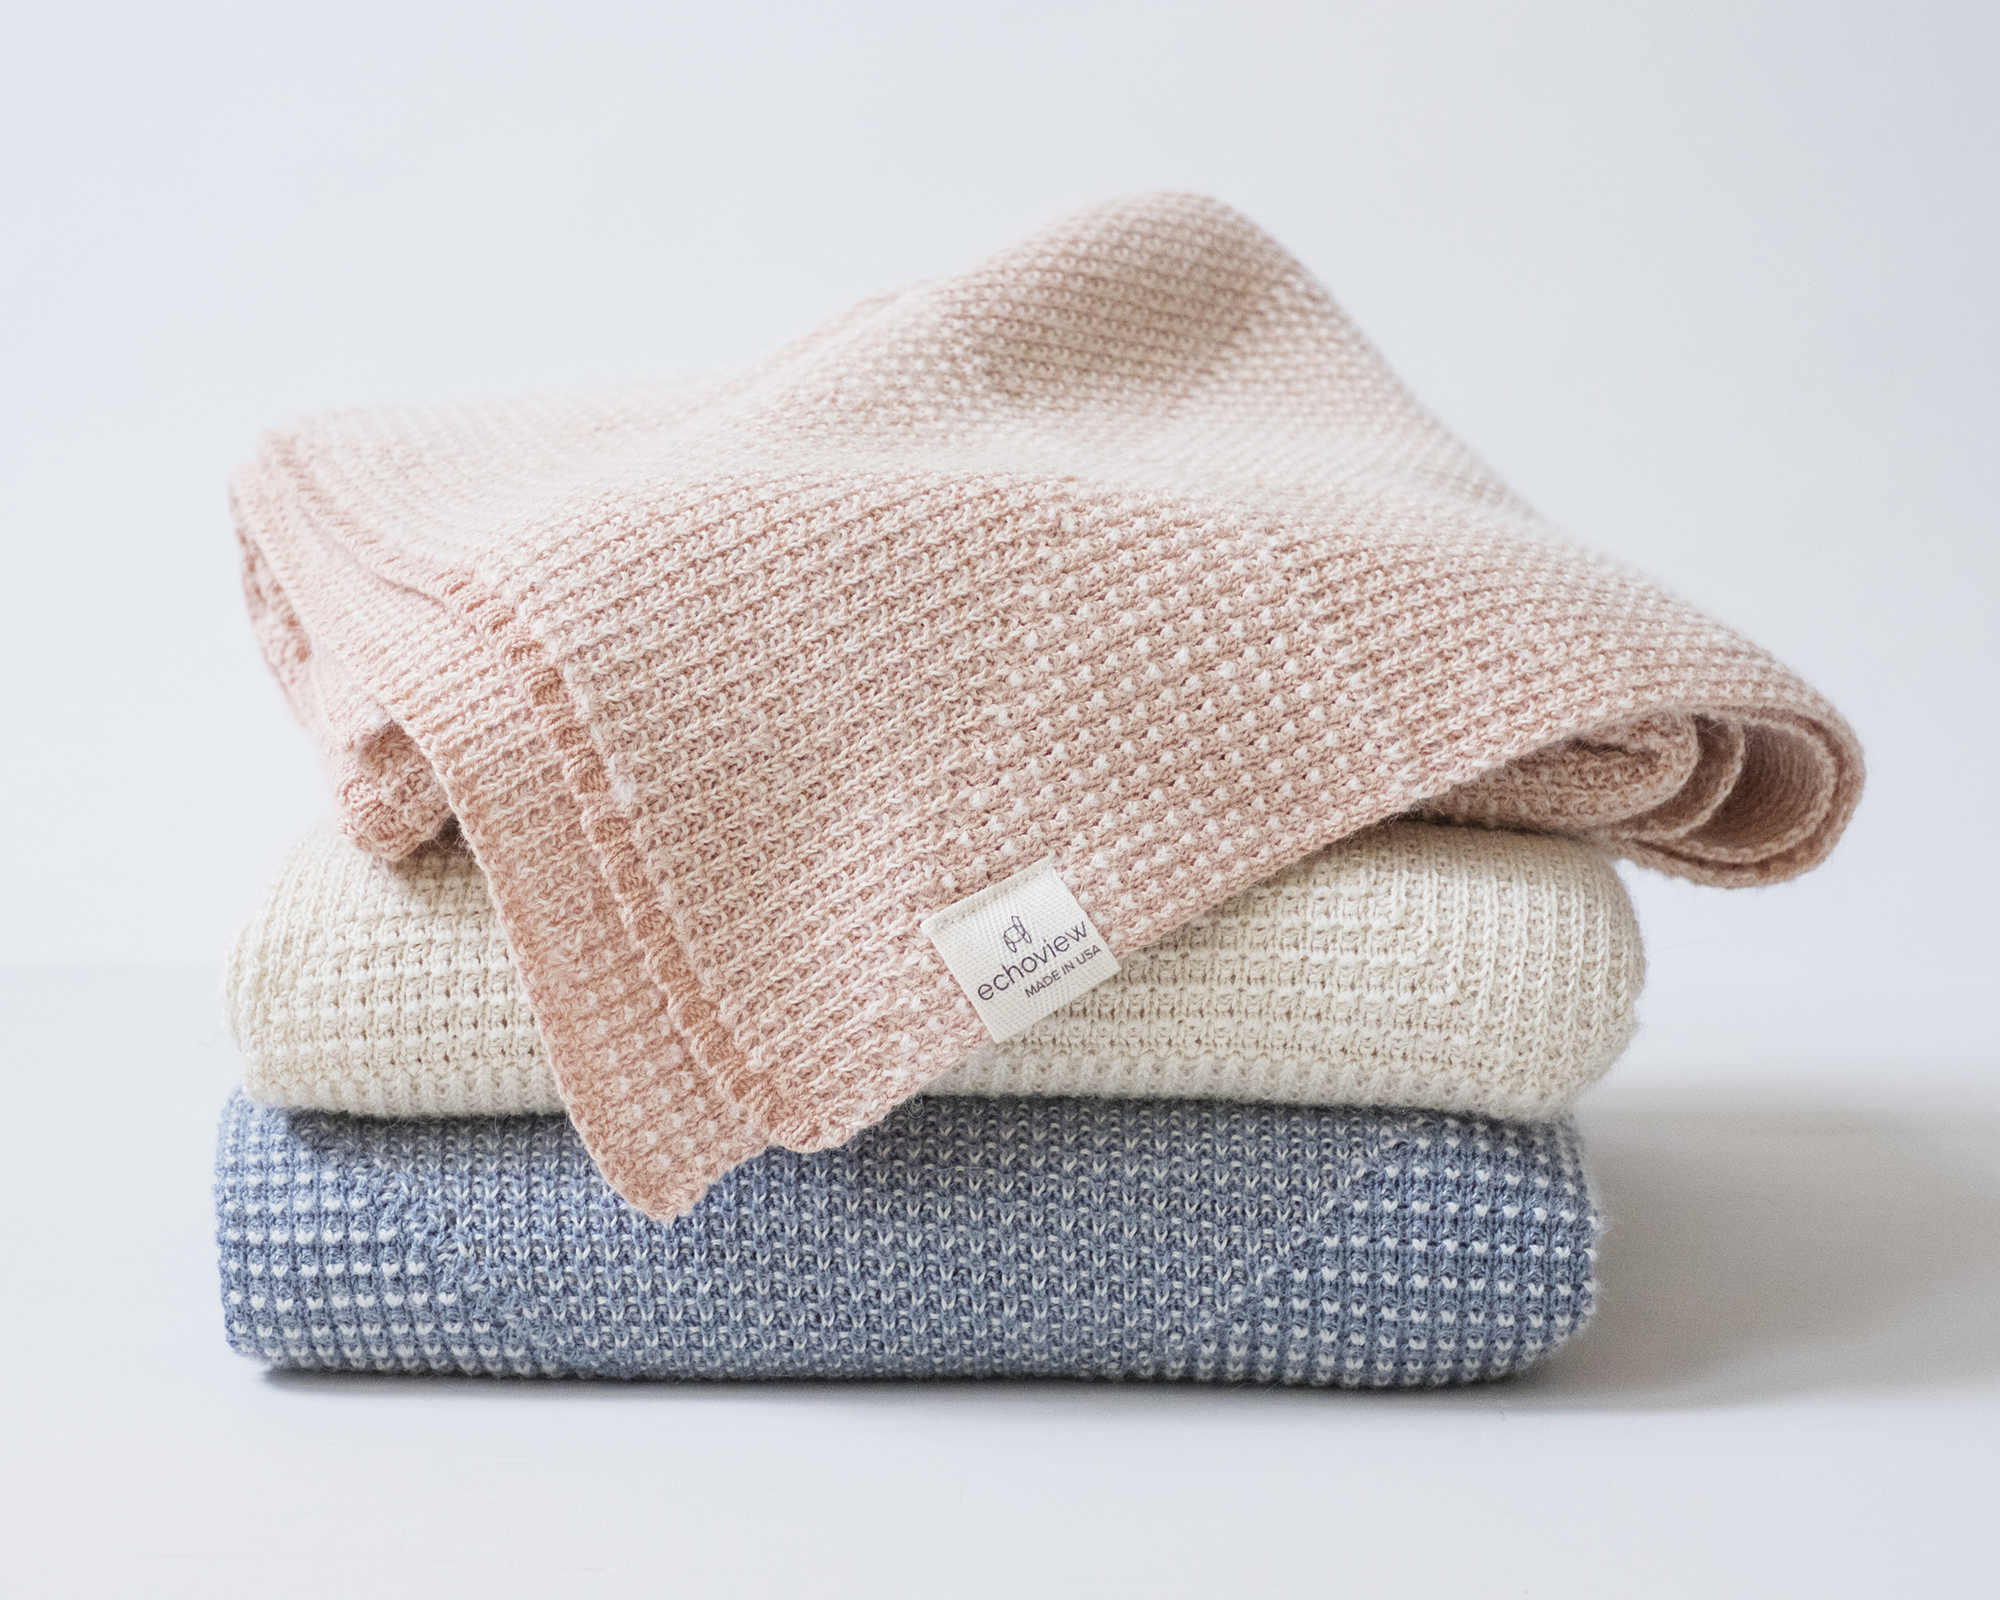 Textured Triangle Baby Blanket  - 70% Organic Supima Cotton and 30% Alpaca